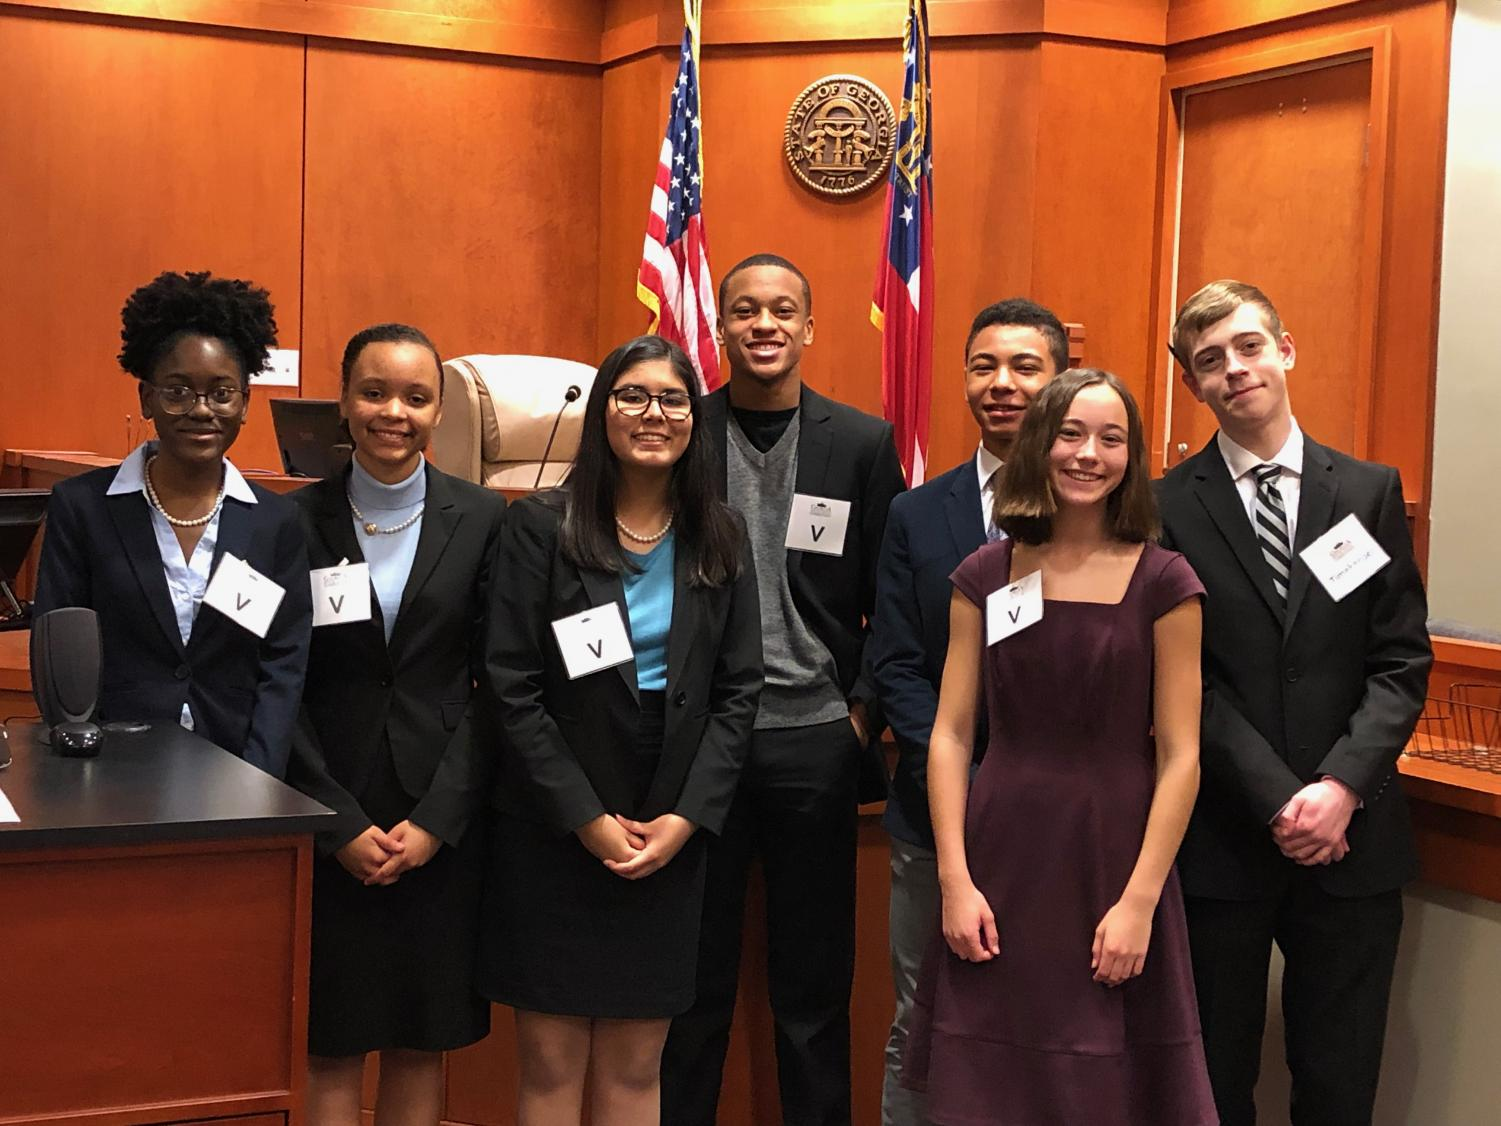 Decatur's mock trial defense team after competing in their first competition of the year. From left to right, Lauryn Williams, Rebecca Rayburn, Nayeli Shad, Daxton Pettus, Seth Bellenguezclark, Alexis Siegler and Connor Coltrane.